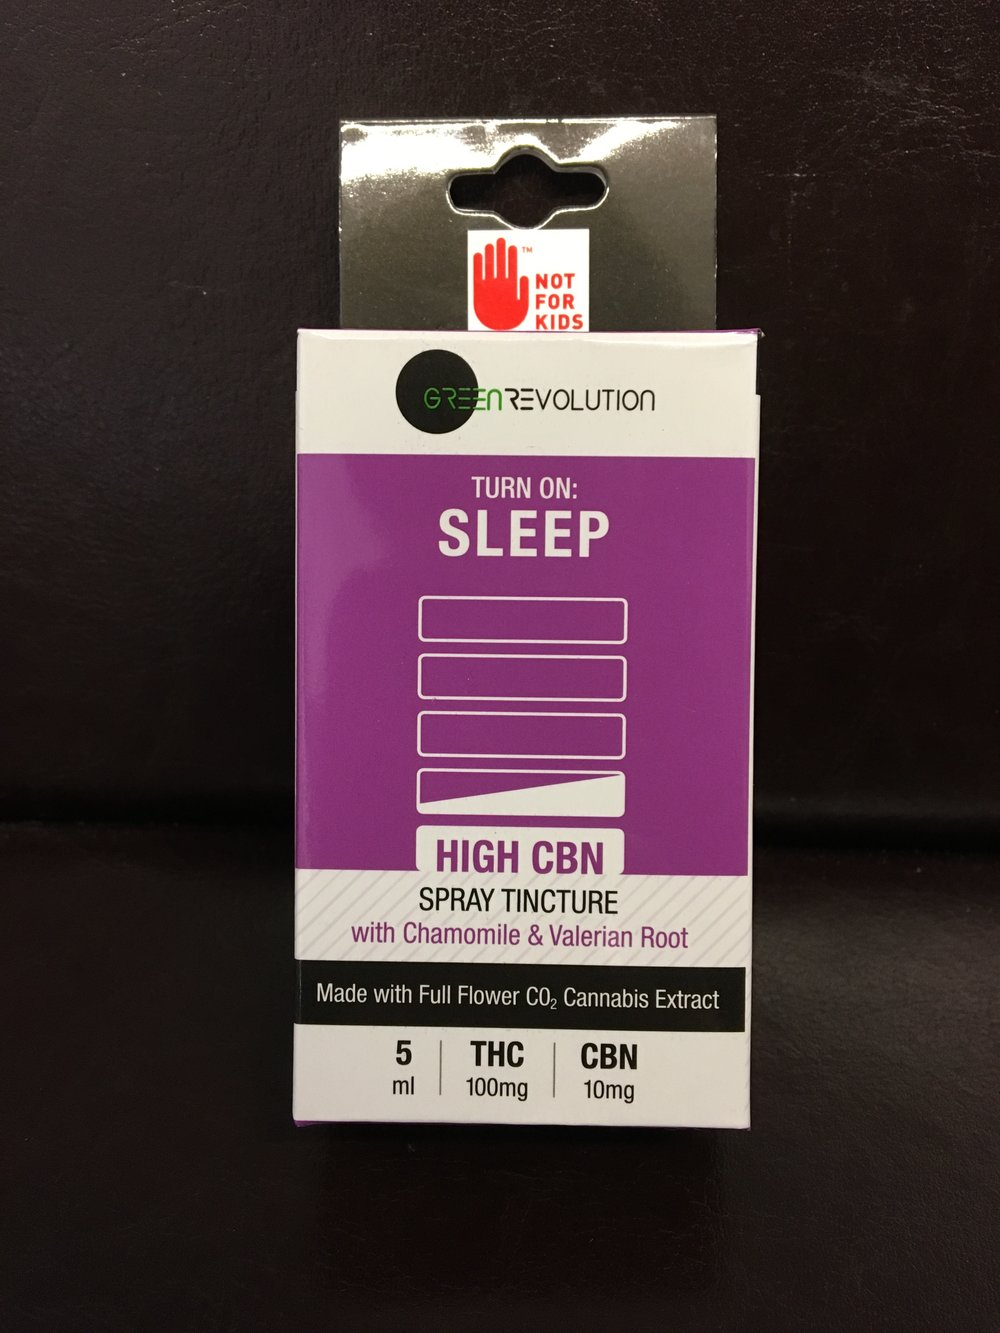 Sleep Green Revolution CBN Cannabis Tincture